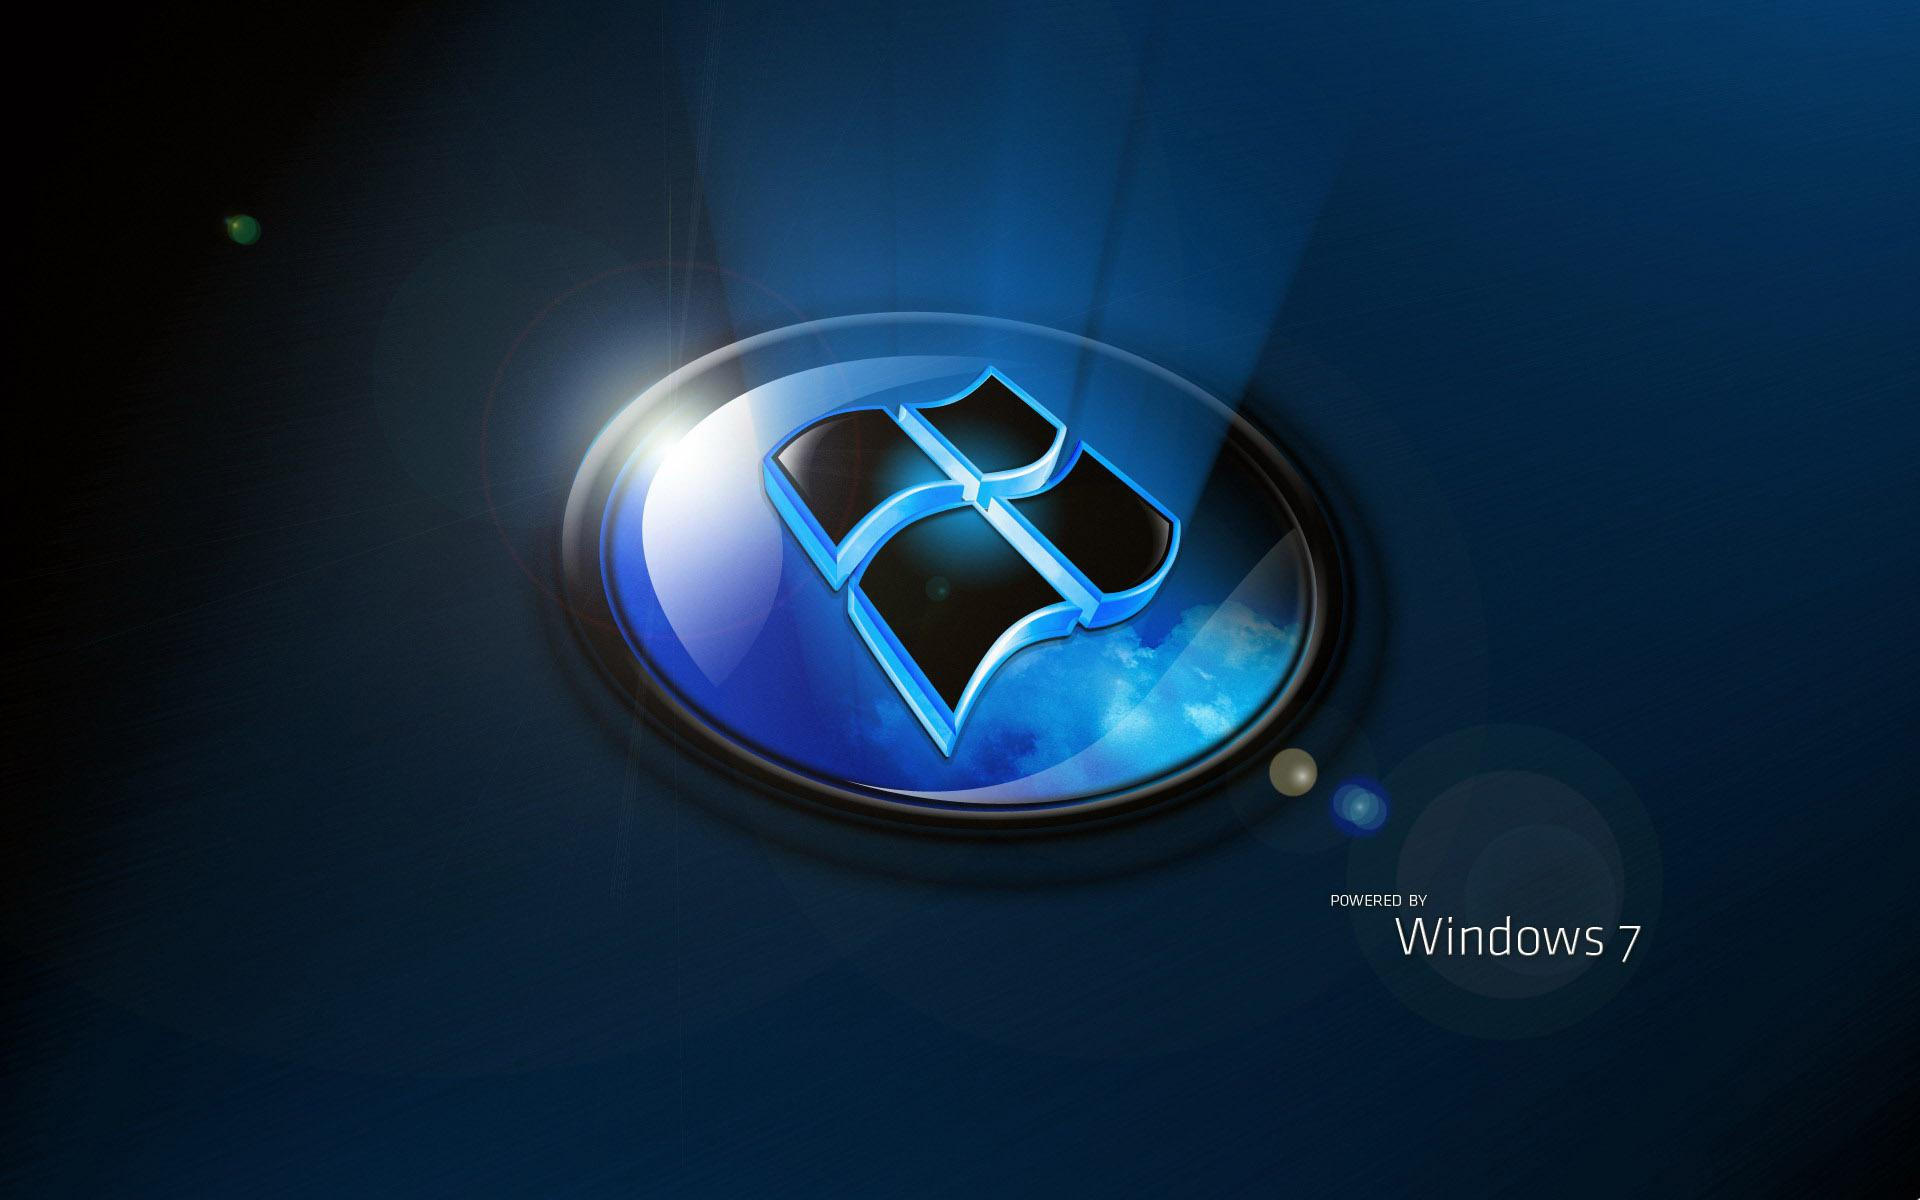 Windows 7, Lighting, Rendering, 3D 1920x1200